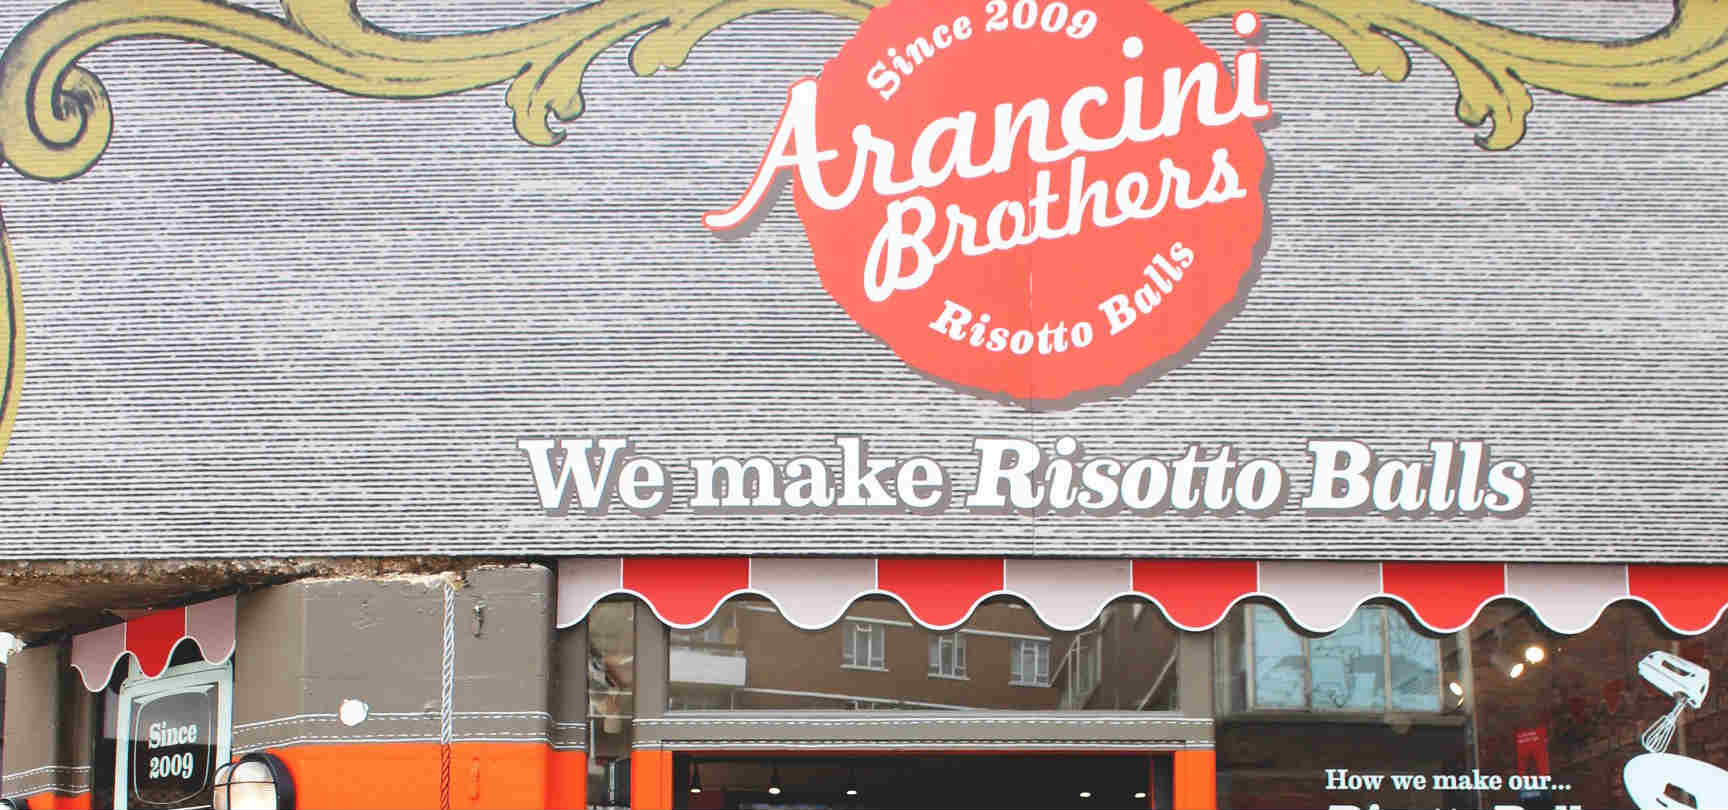 BREAKING NEWS: Arancini Brothers open vegan outlet